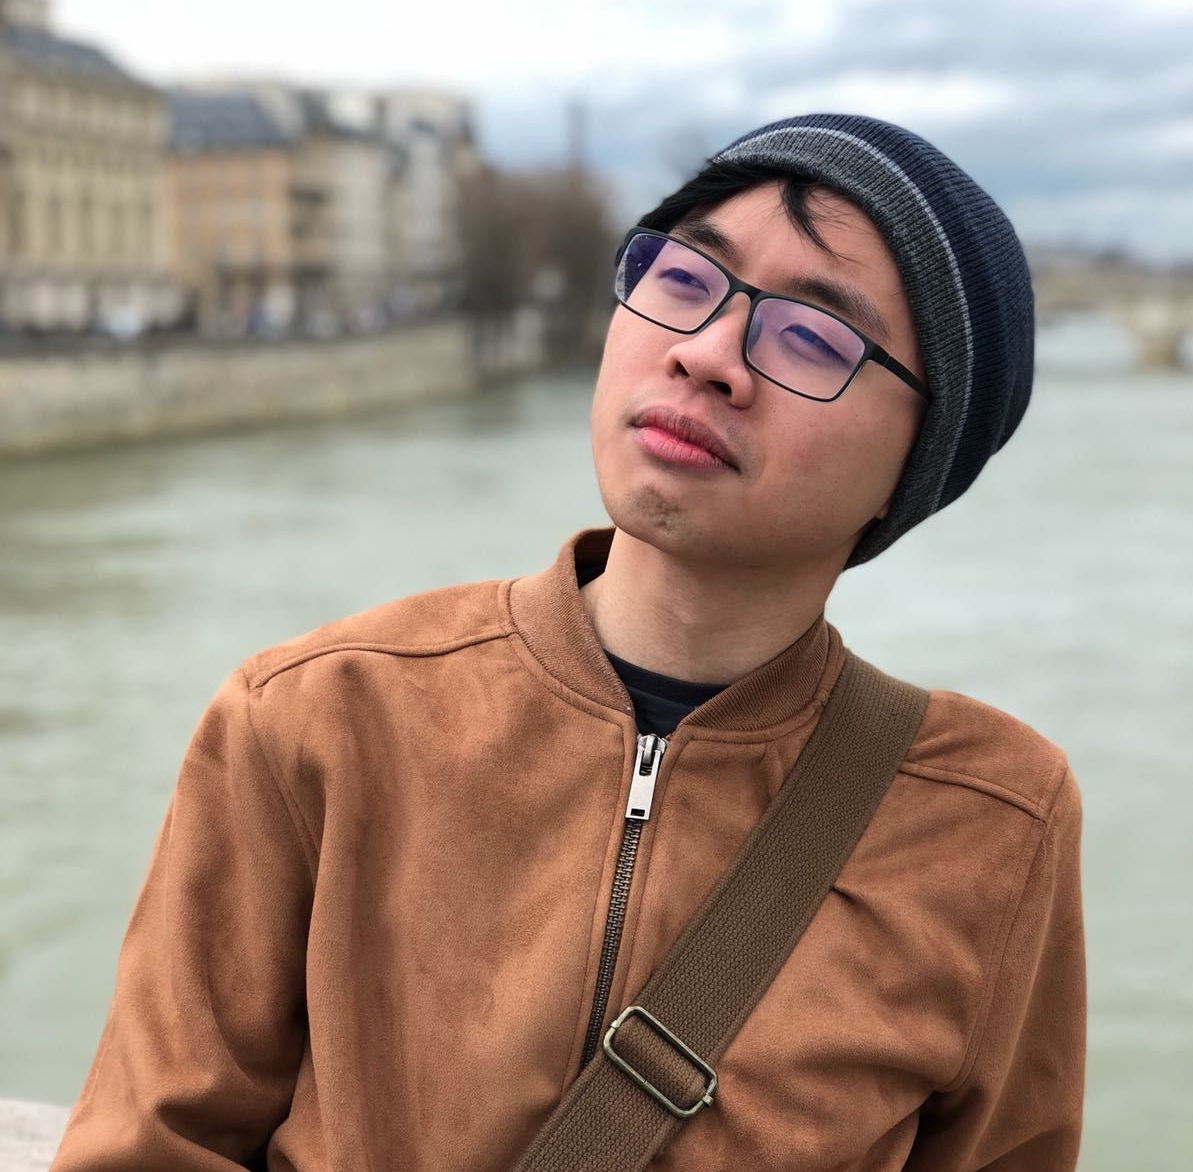 Photographed by the Seine. I'm told I have a recognisable 'thinking face'. This isn't it - it's me being a poser - but I think it's probably quite close?